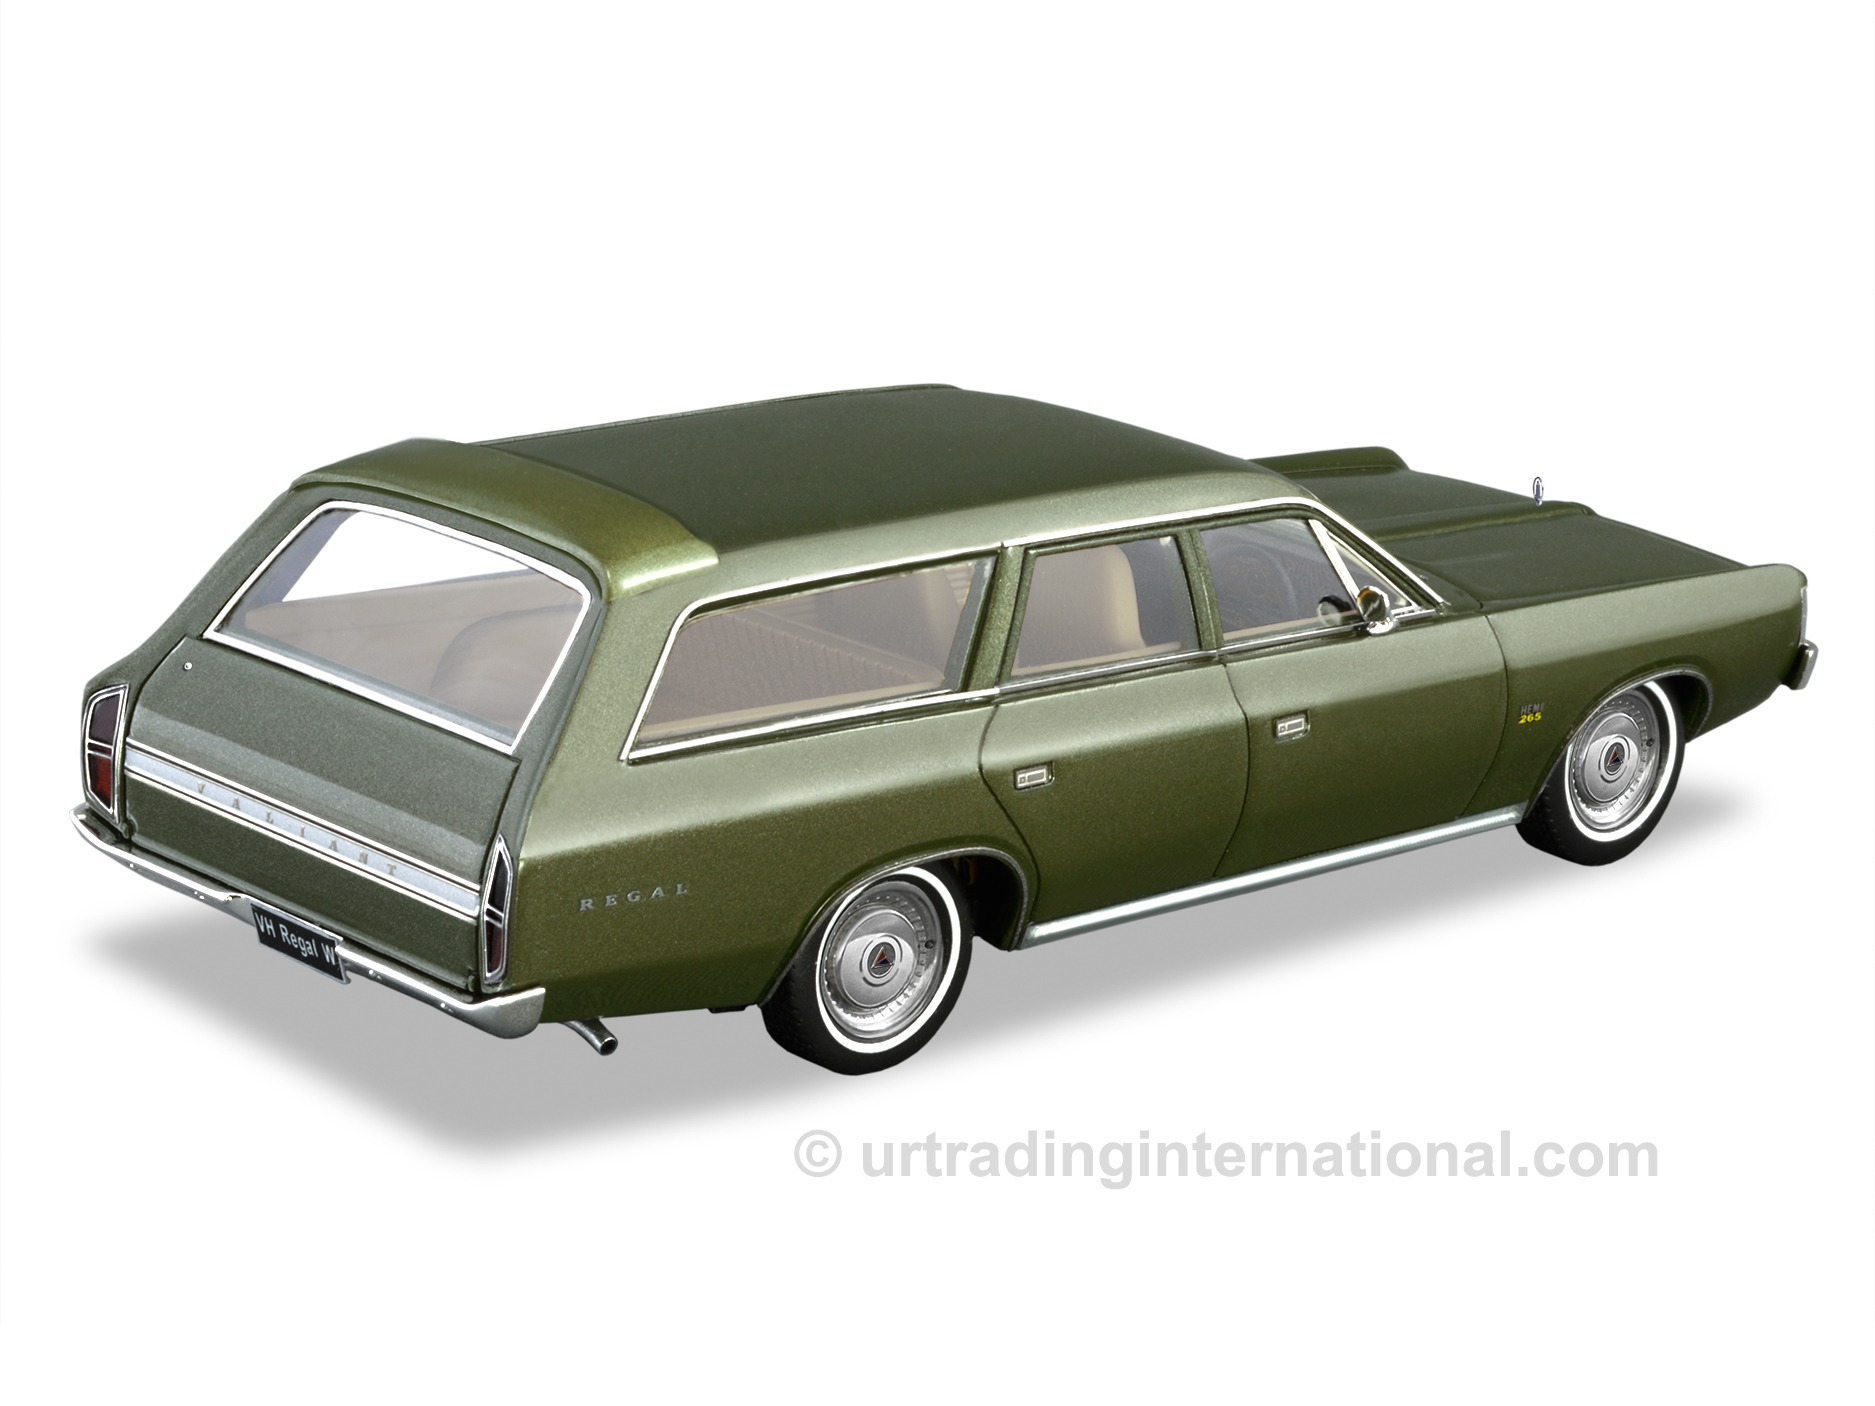 VH Regal Station Wagon – Deep Chartreuse (Metallic)